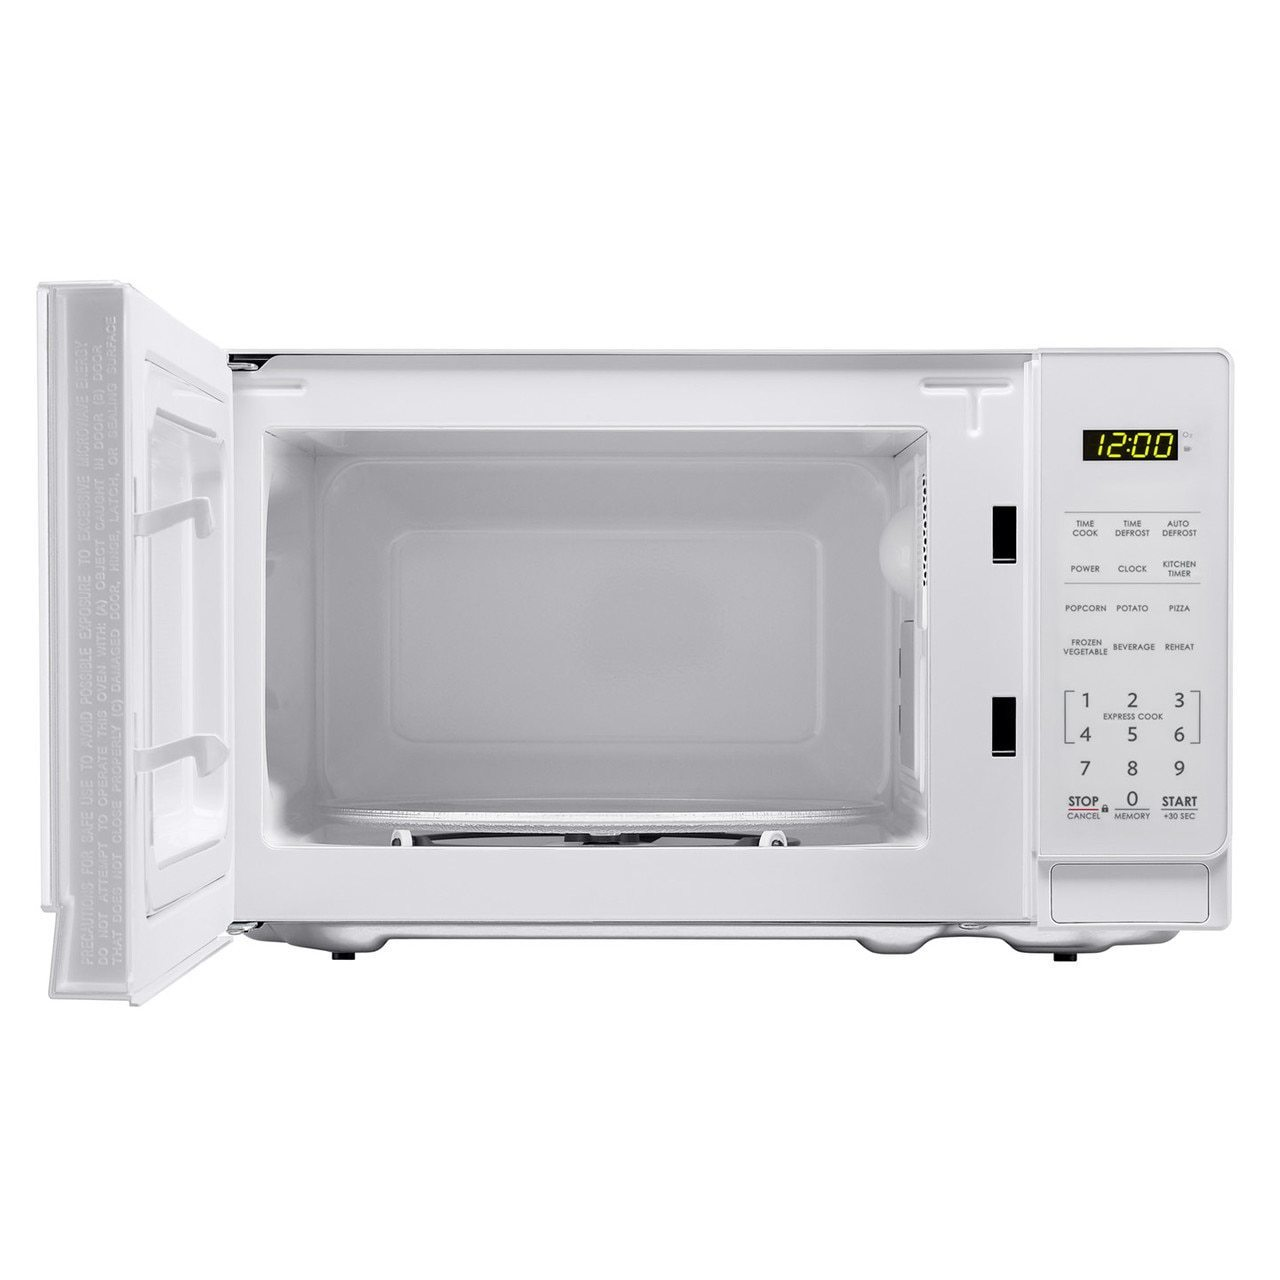 Smc0710bw Sharp Appliances 0 7 Cu Ft 700w Sharp White Carousel Countertop Microwave Oven Schaefer S